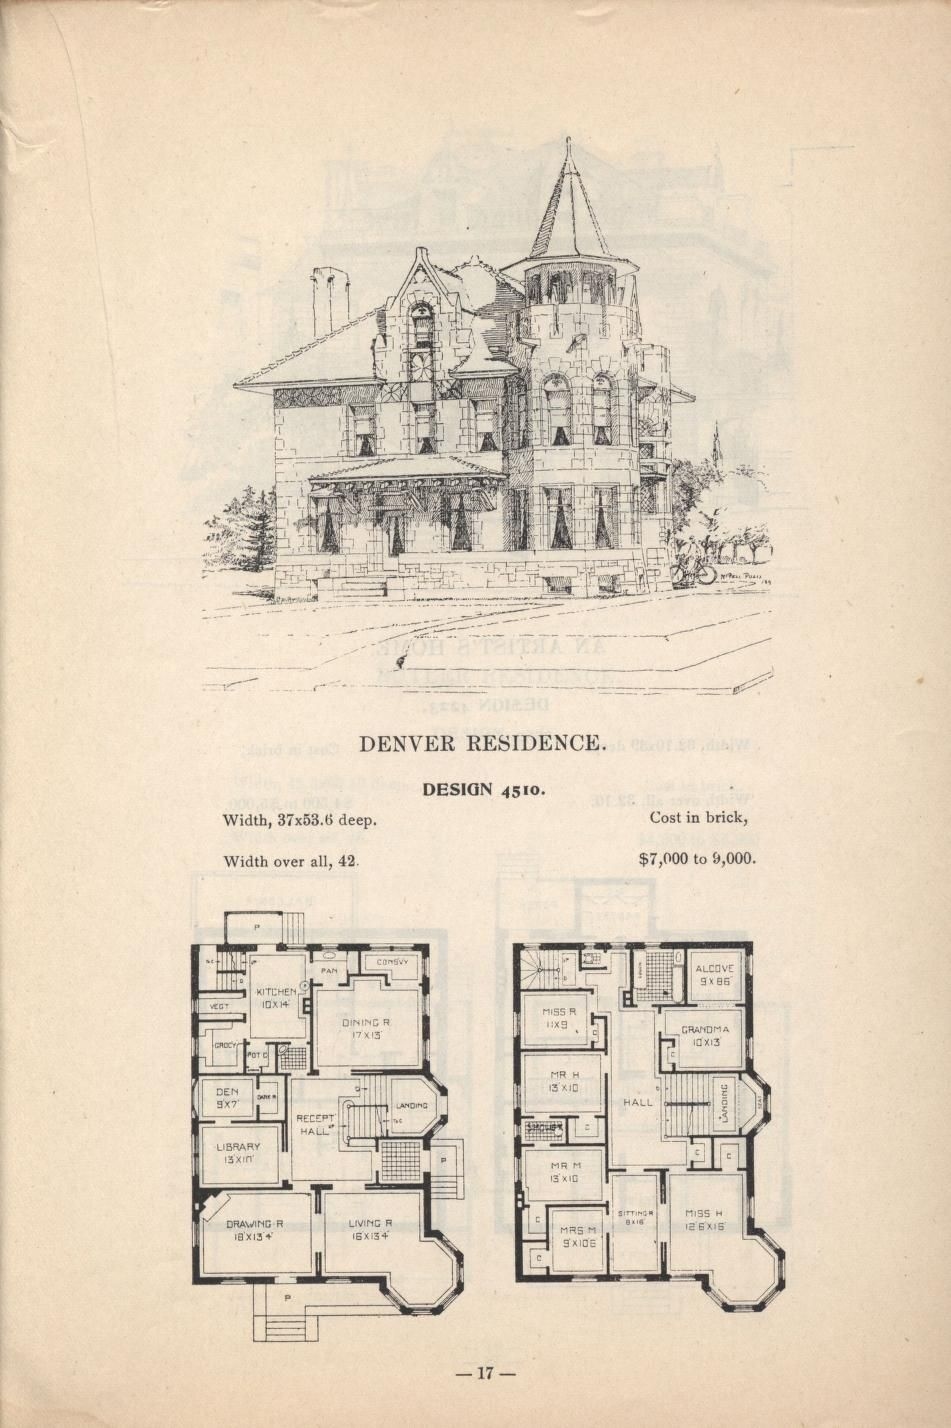 Artistic City Houses No 43 Herbert Chivers Free Download Borrow And Streaming Internet Archive Victorian House Plans House Plans Victorian Homes